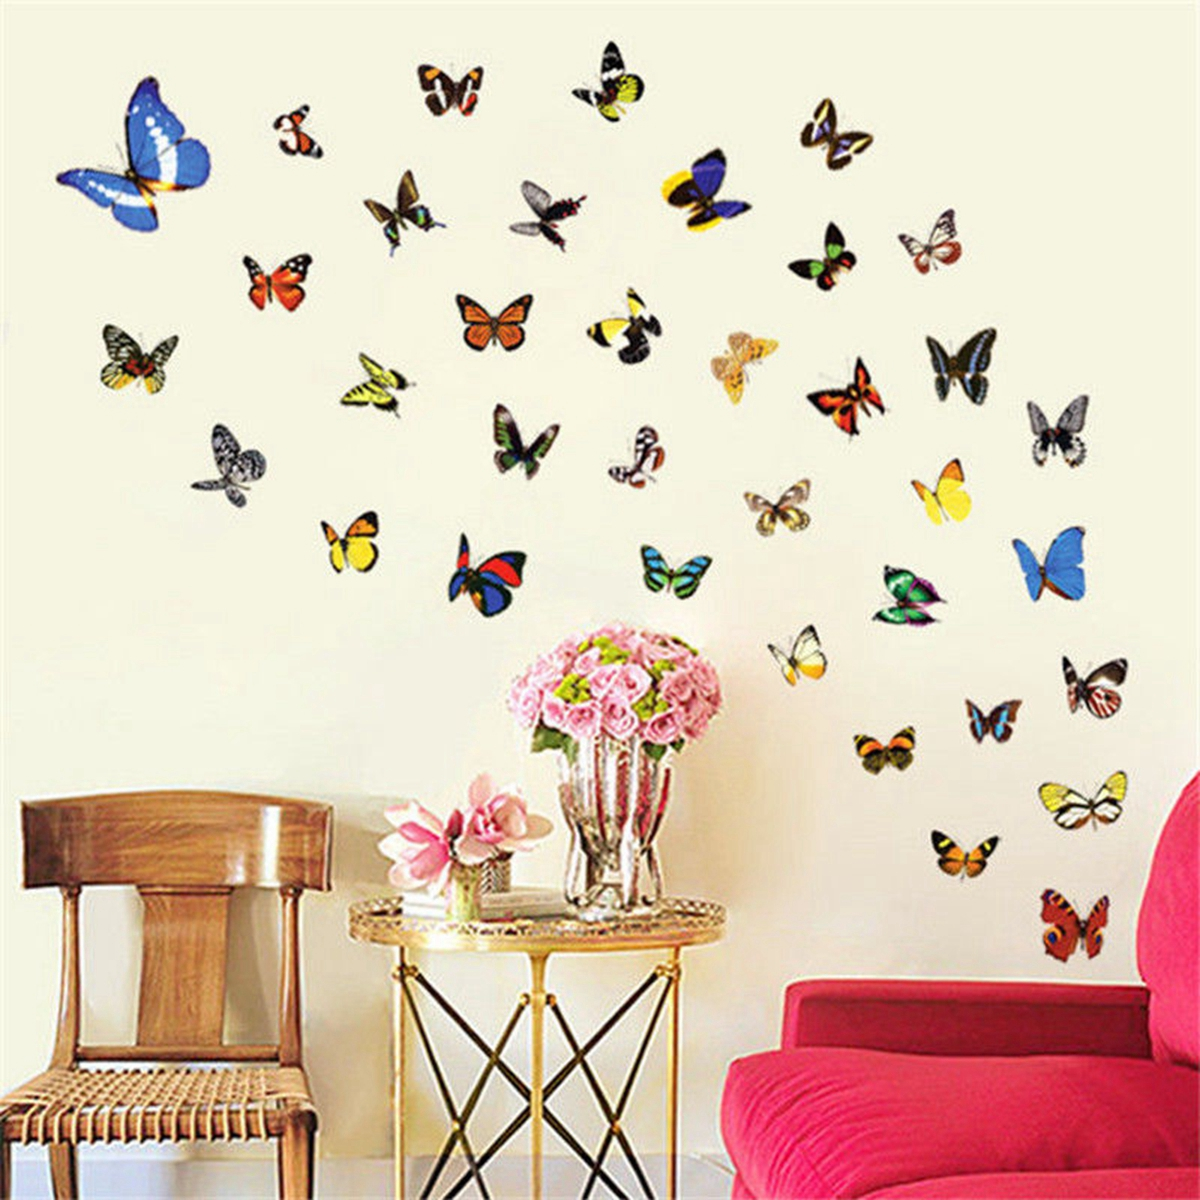 80pcs butterfly wall sticker decals vinyl art bedroom for Butterfly wall mural stickers